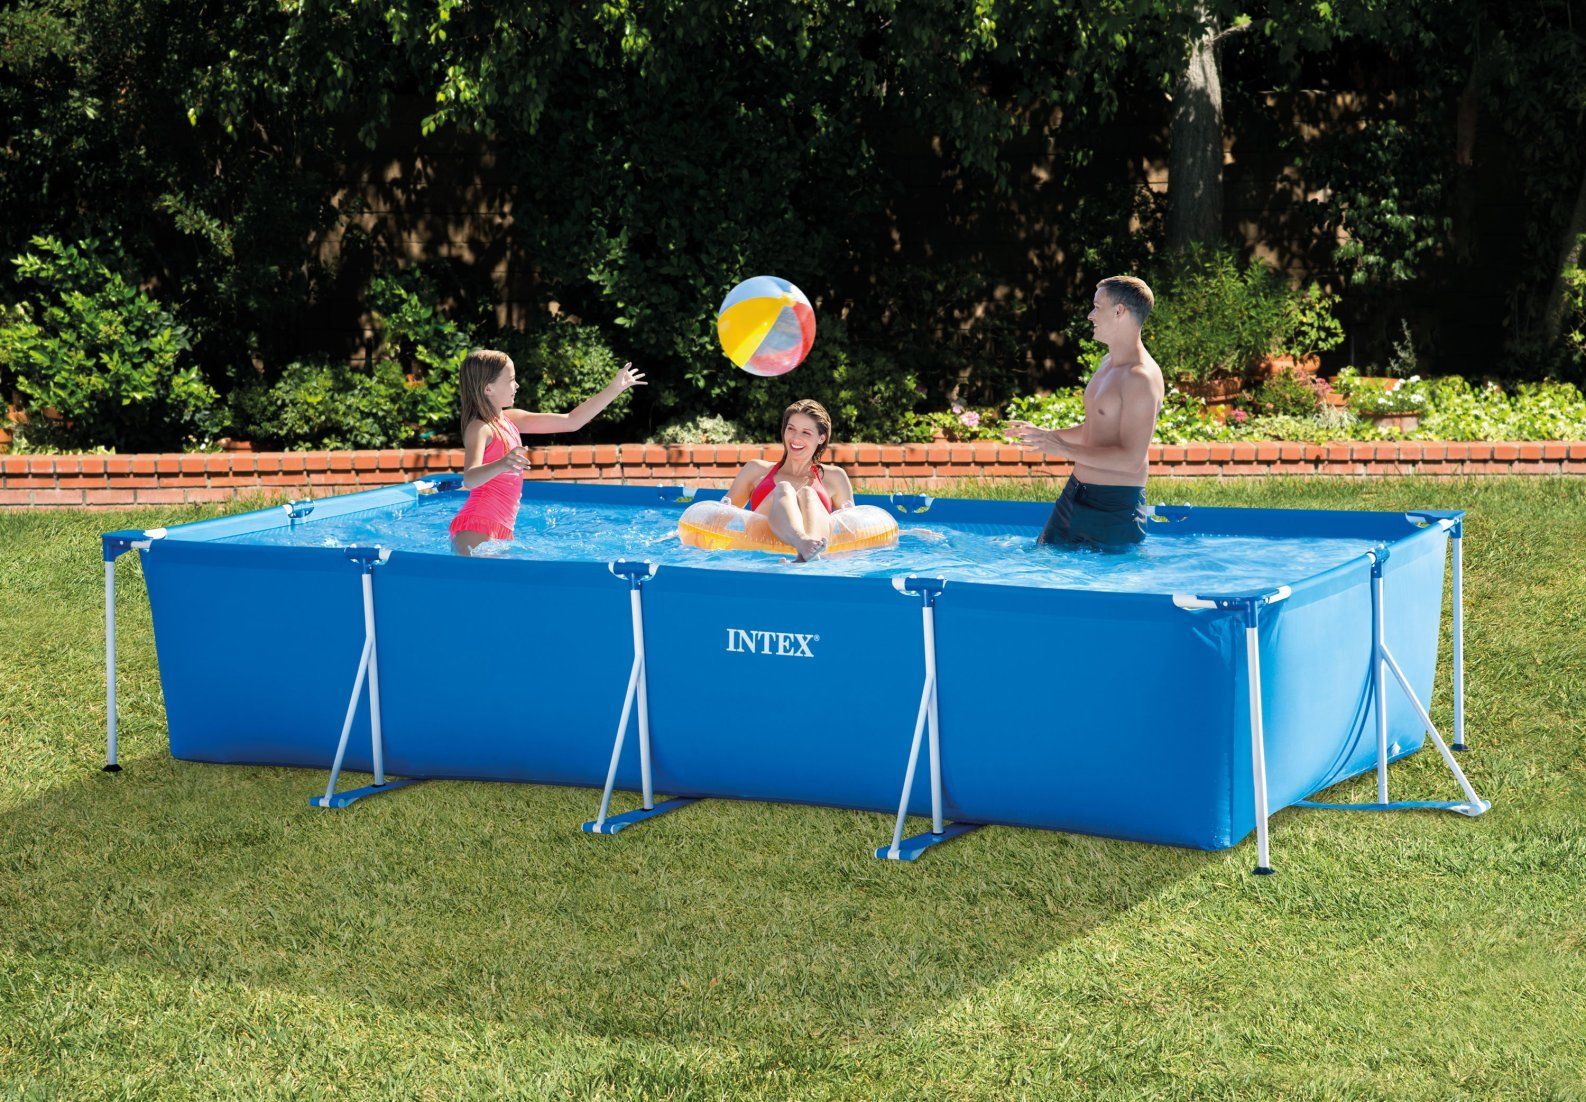 Intex 28273 4.5M X 2.2M X 0.84M Cadre Rectangulaire Hors Sol Piscine  Familiale - Buy Piscine À Ossature,piscine Hors Sol,piscine Rectangulaire  Product ... destiné Piscine Hors Sol Rectangulaire Intex